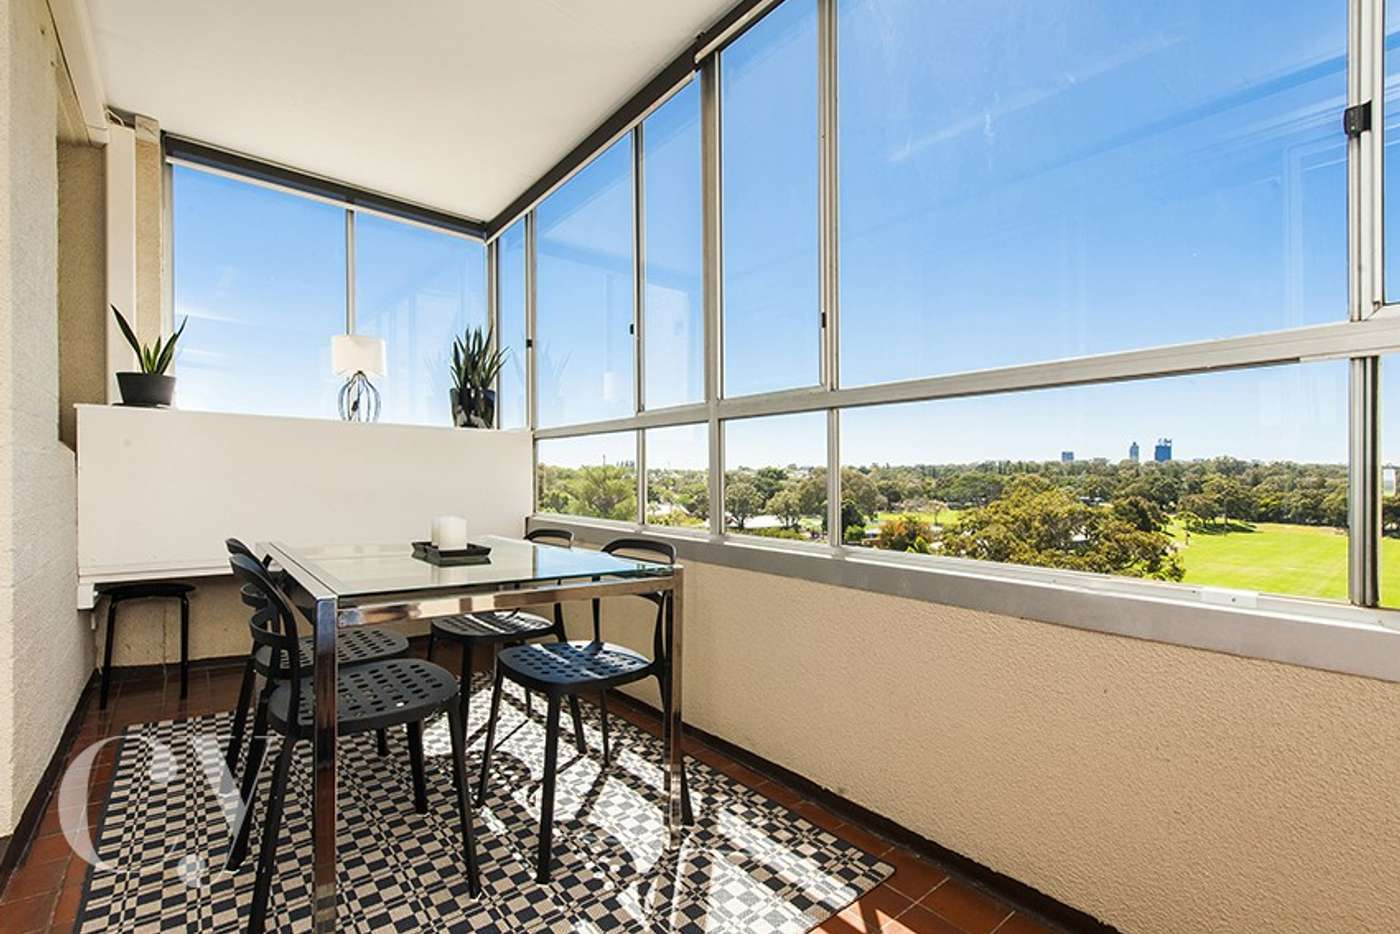 Main view of Homely apartment listing, 84/165 Derby Road, Shenton Park WA 6008